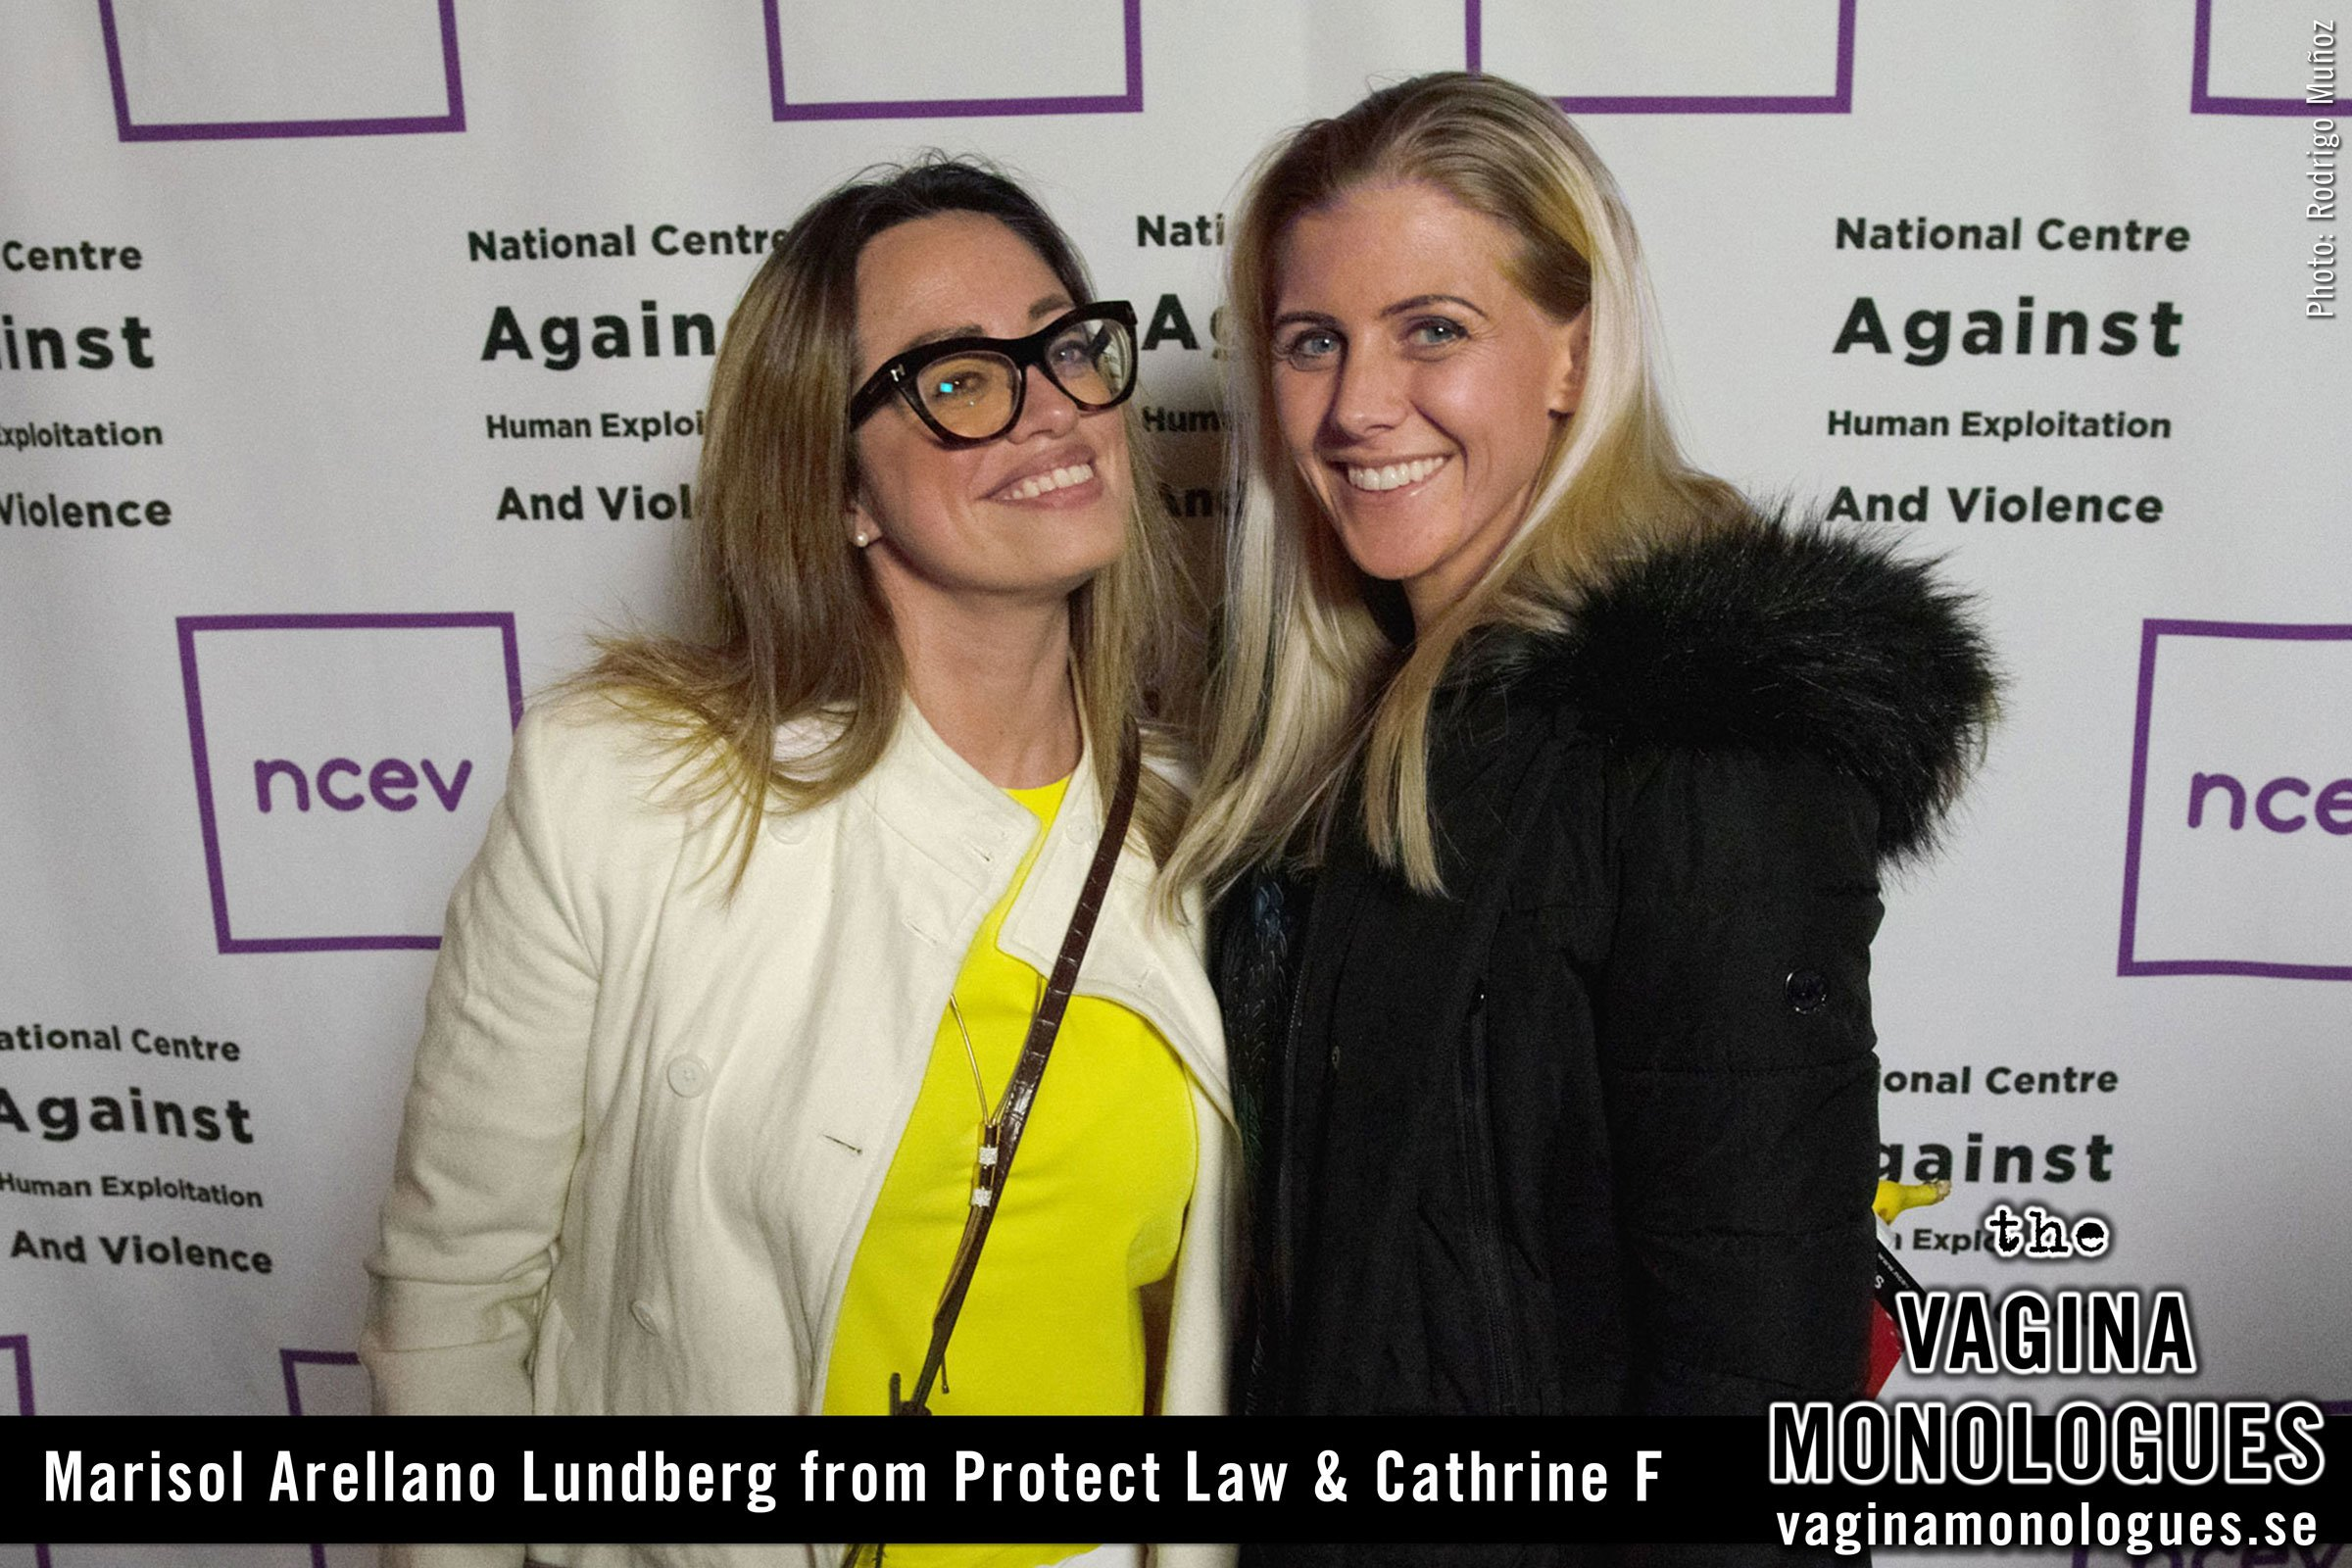 Marisol Arellano Lundberg from Protect Law & Cathrine F